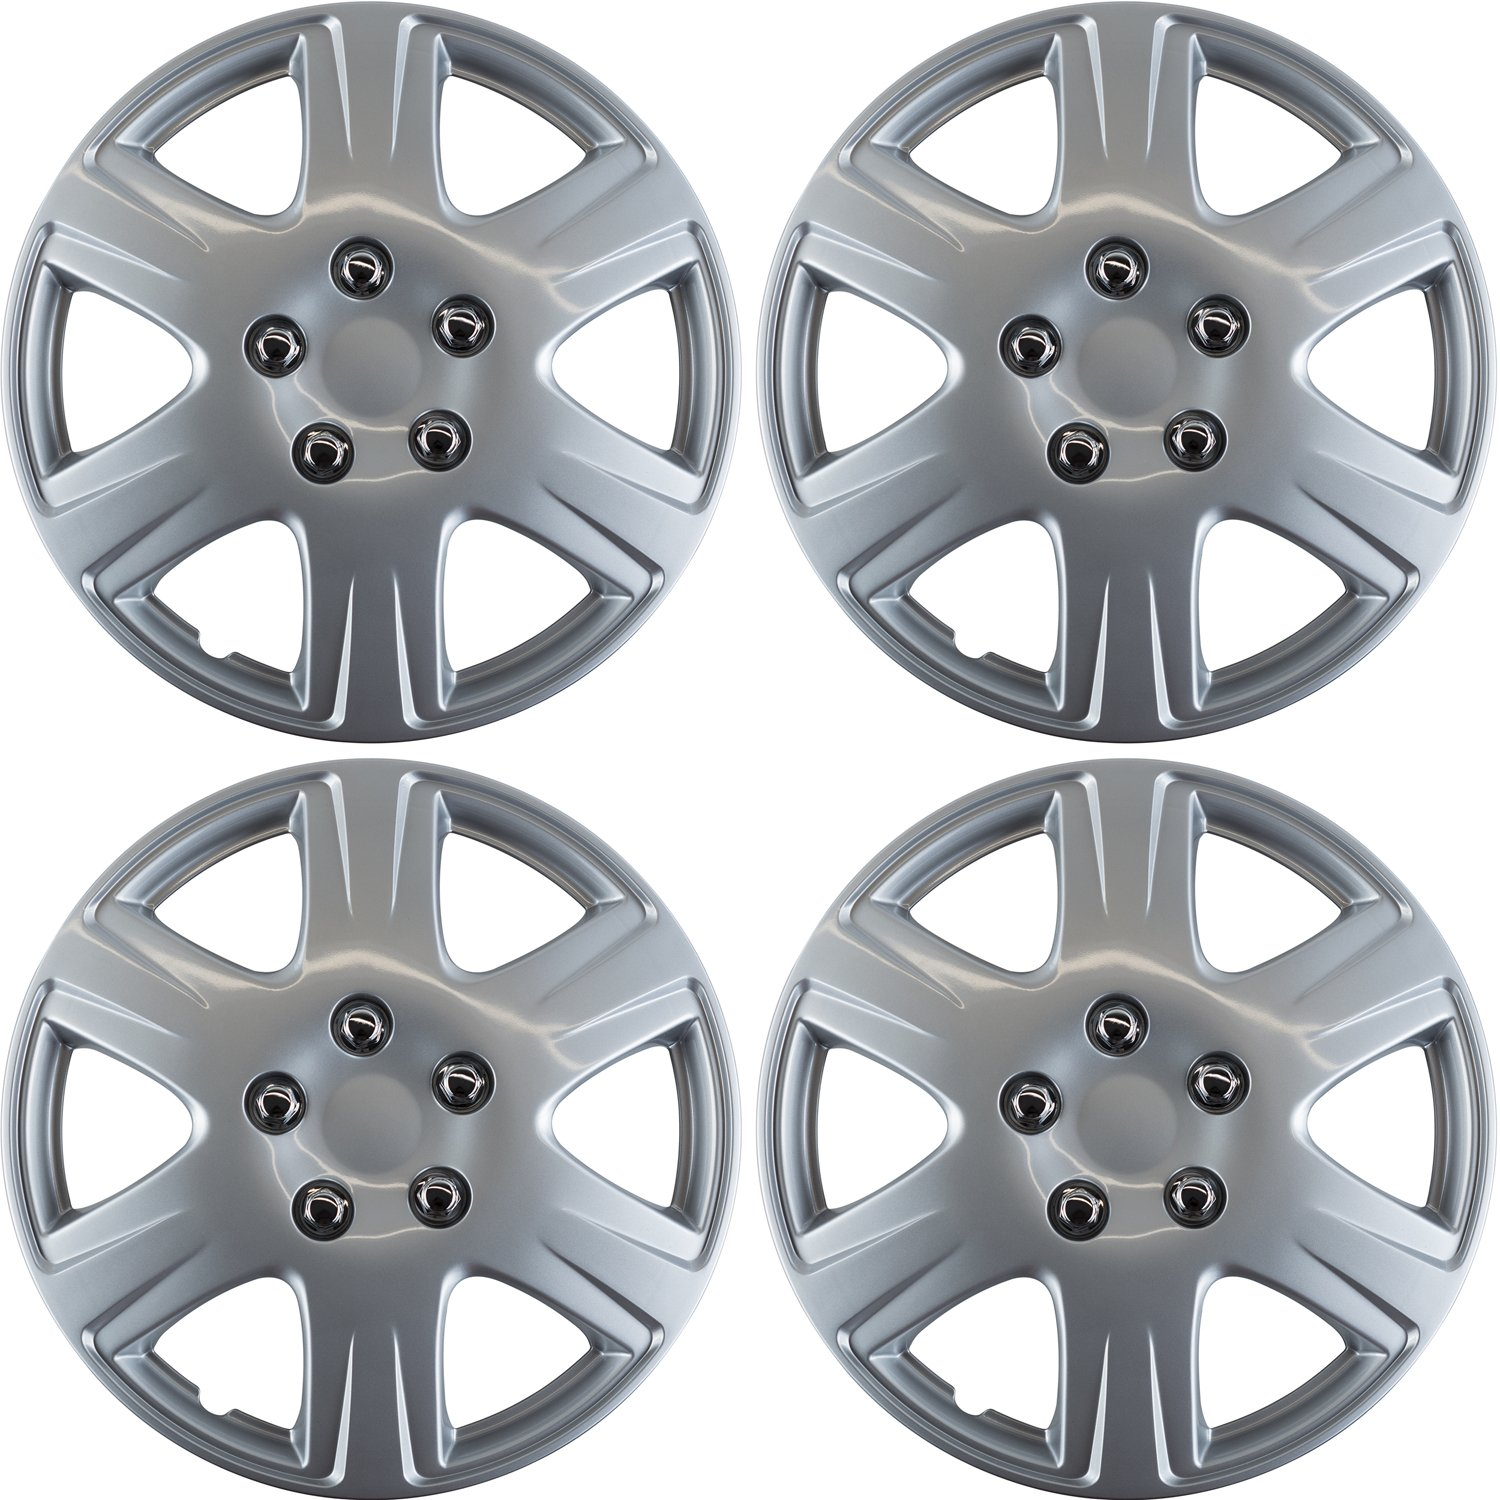 OxGord Hubcaps for Toyota Corolla (Pack of 4) Wheel Covers - 15'' Inch, 6 Spoke, Snap On, Silver